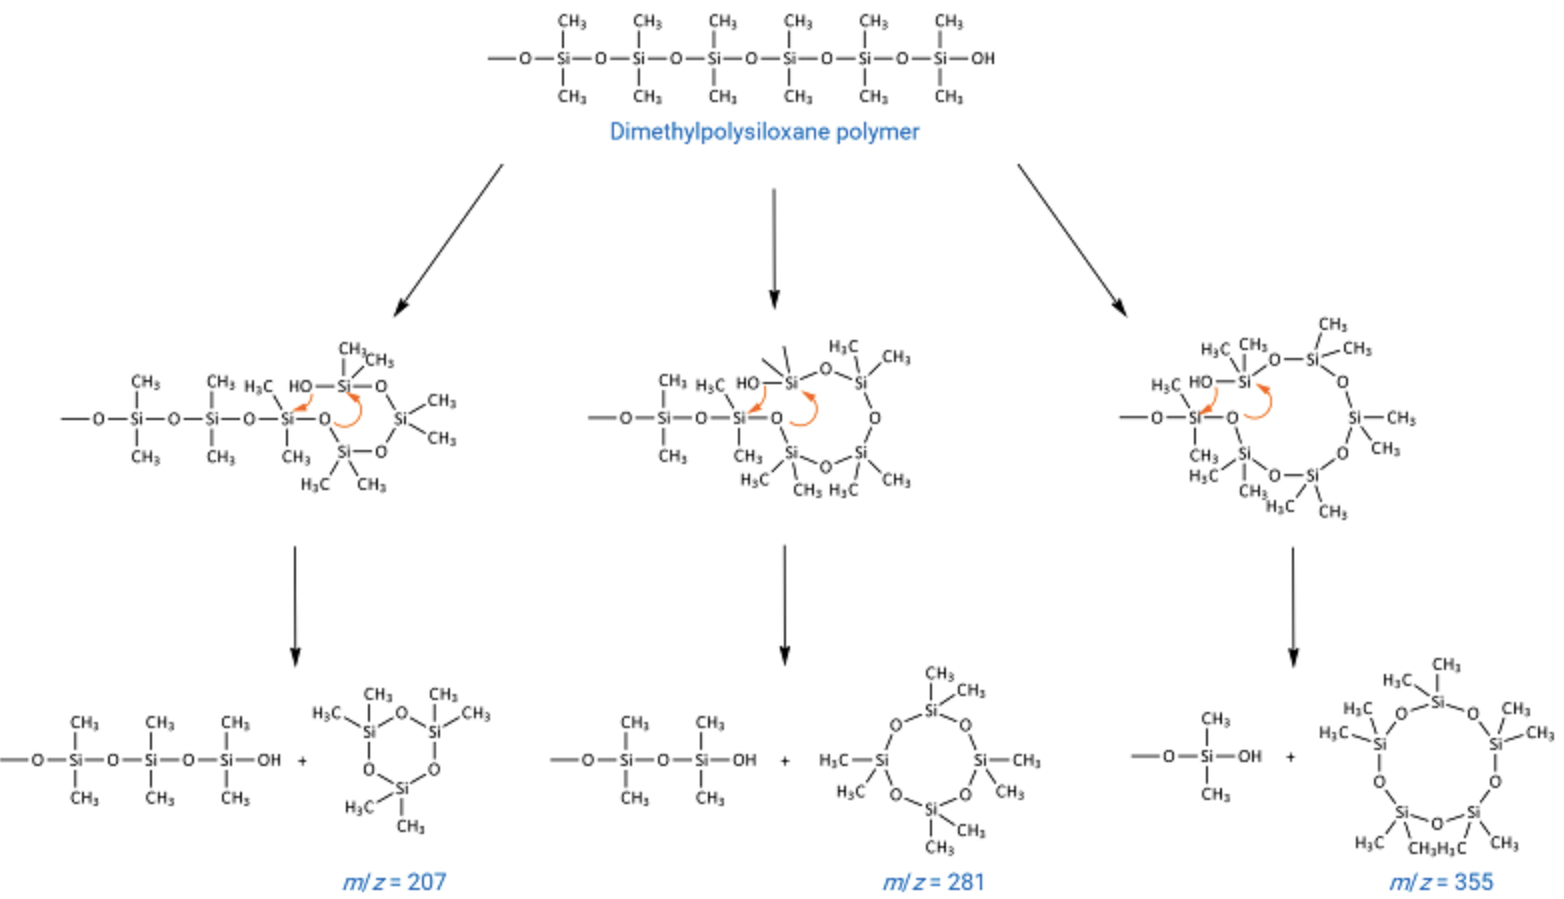 Reaction scheme for formation of cyclic polysiloxane bleed products from a dimethyl polysiloxane immobilised GC stationary phase.